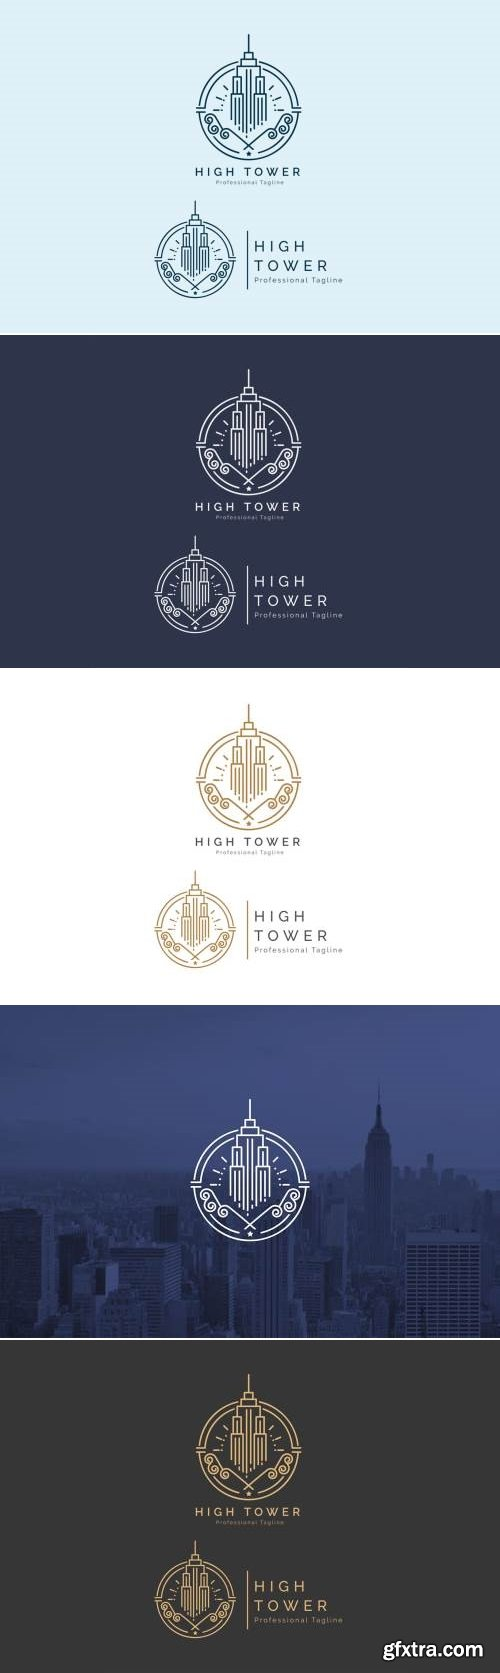 High Tower - Building Logo